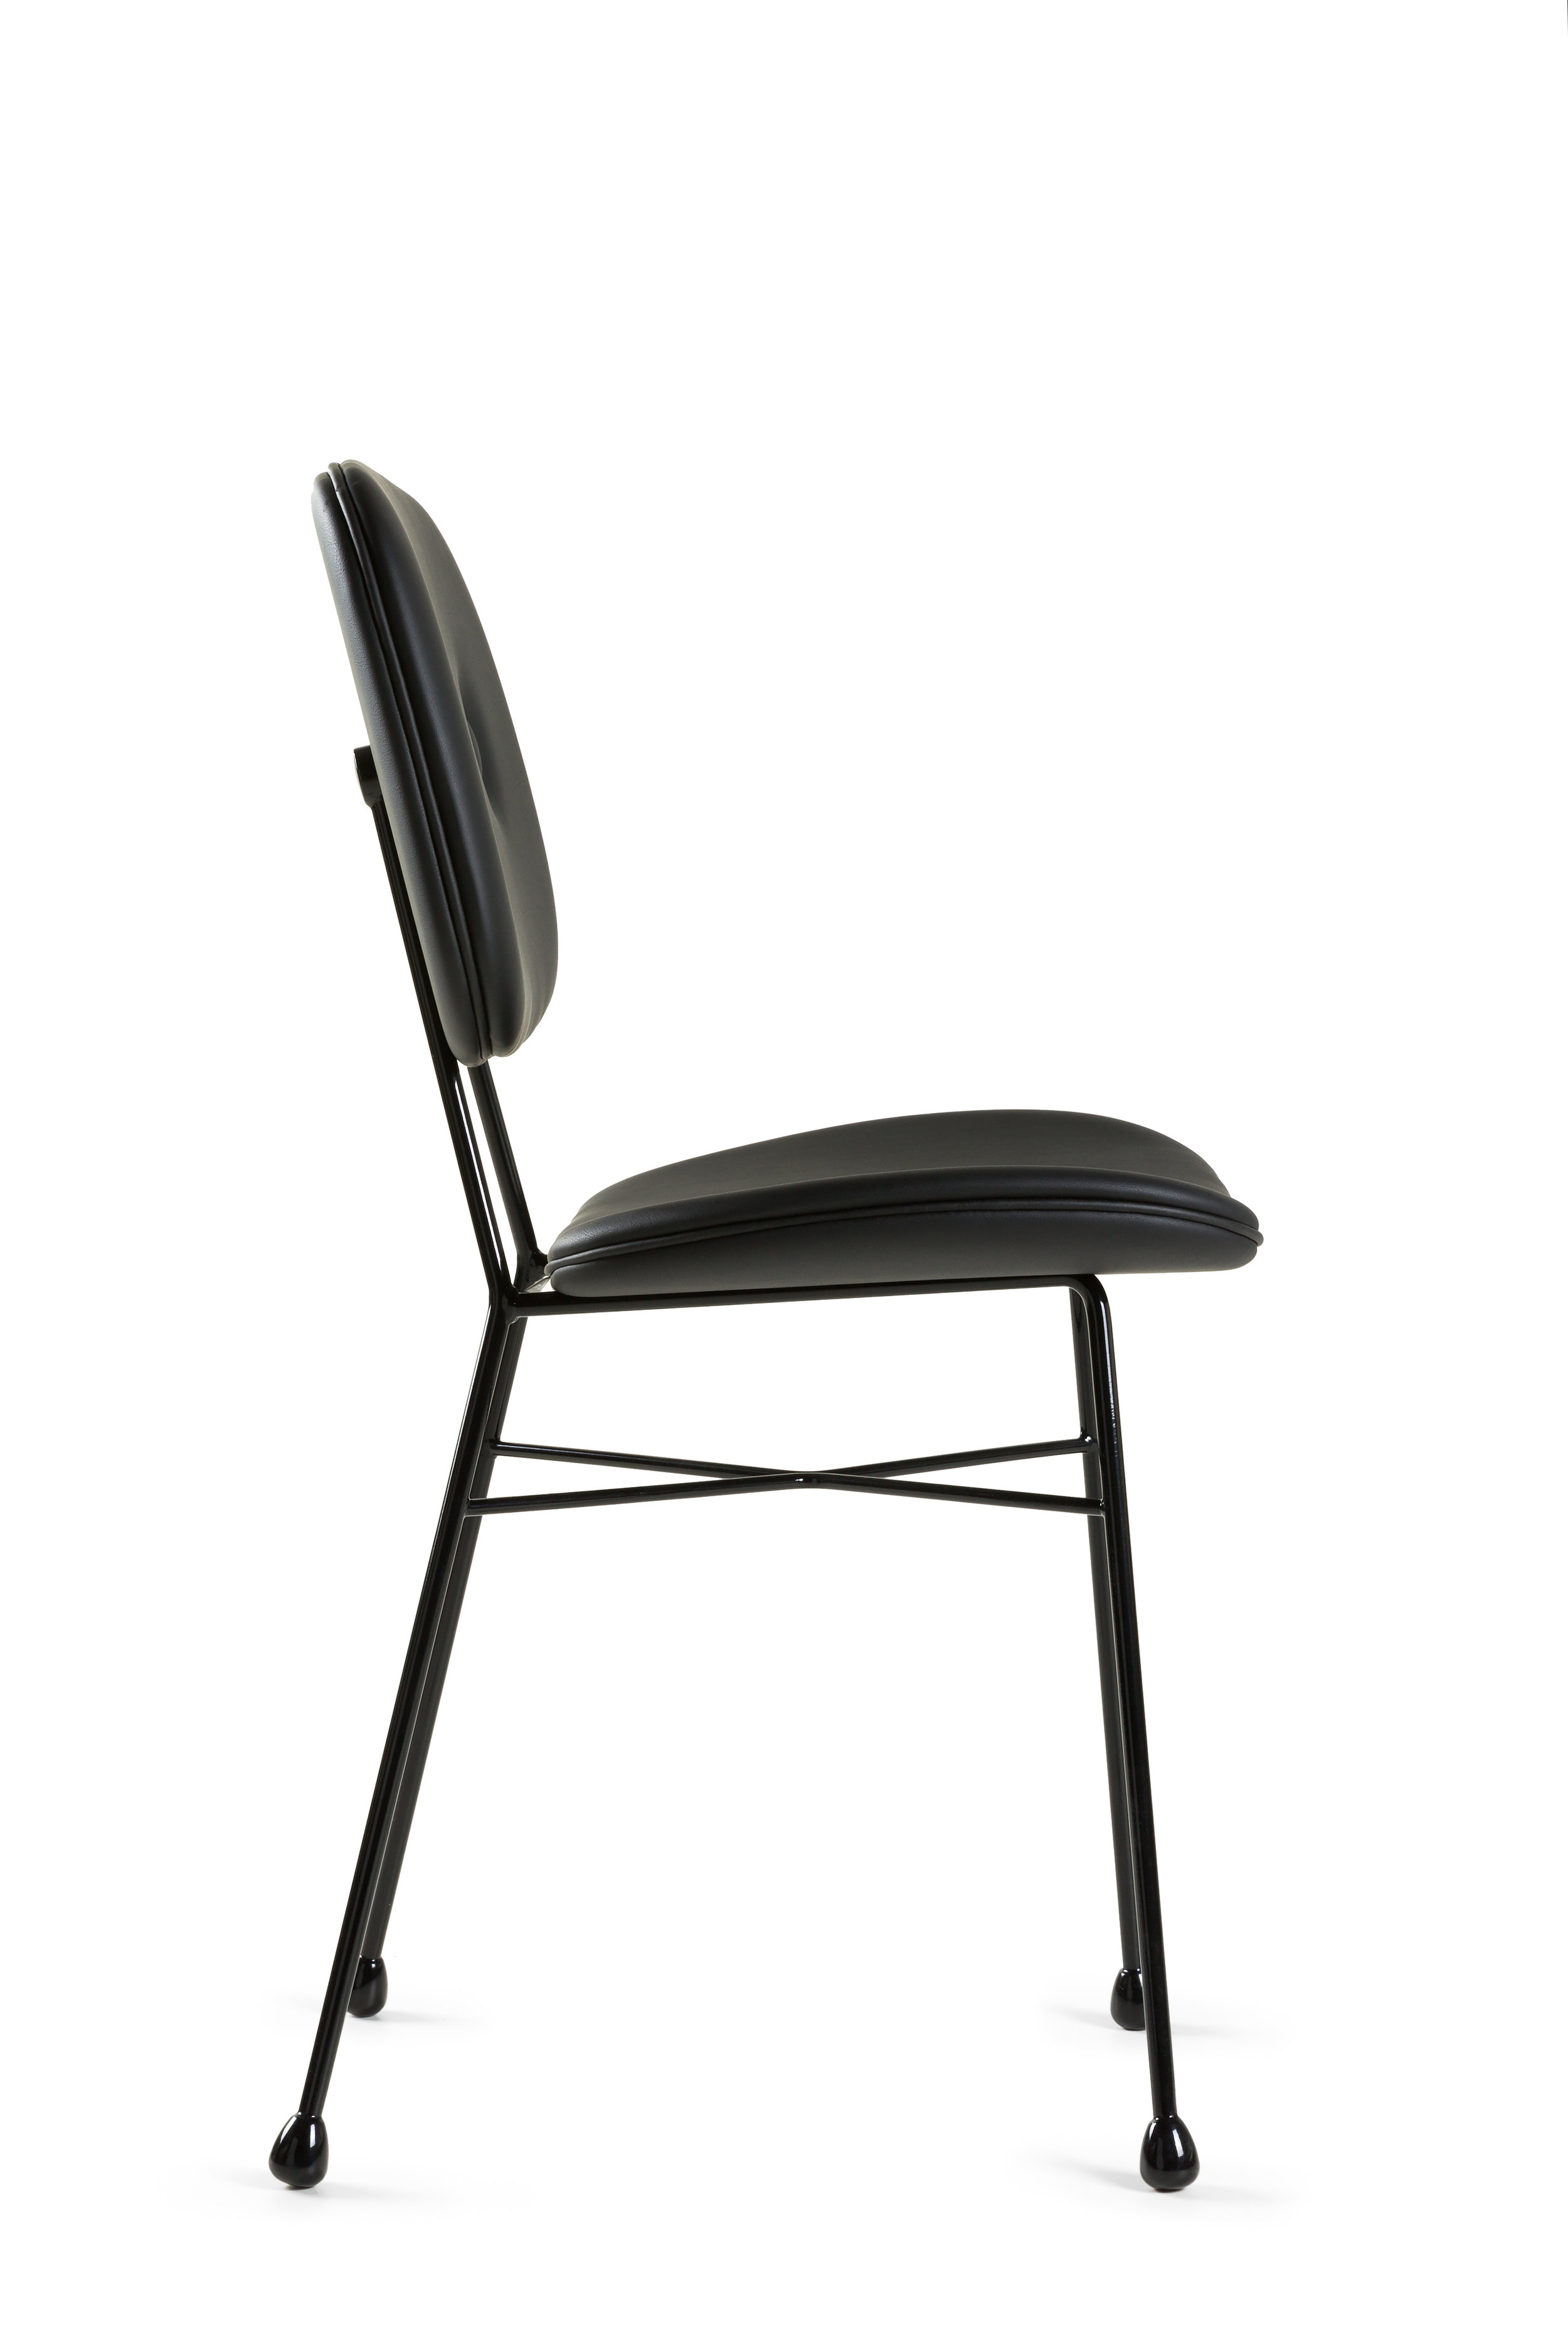 the_golden_chair_black_side_01_300dpi_moooi.jpg